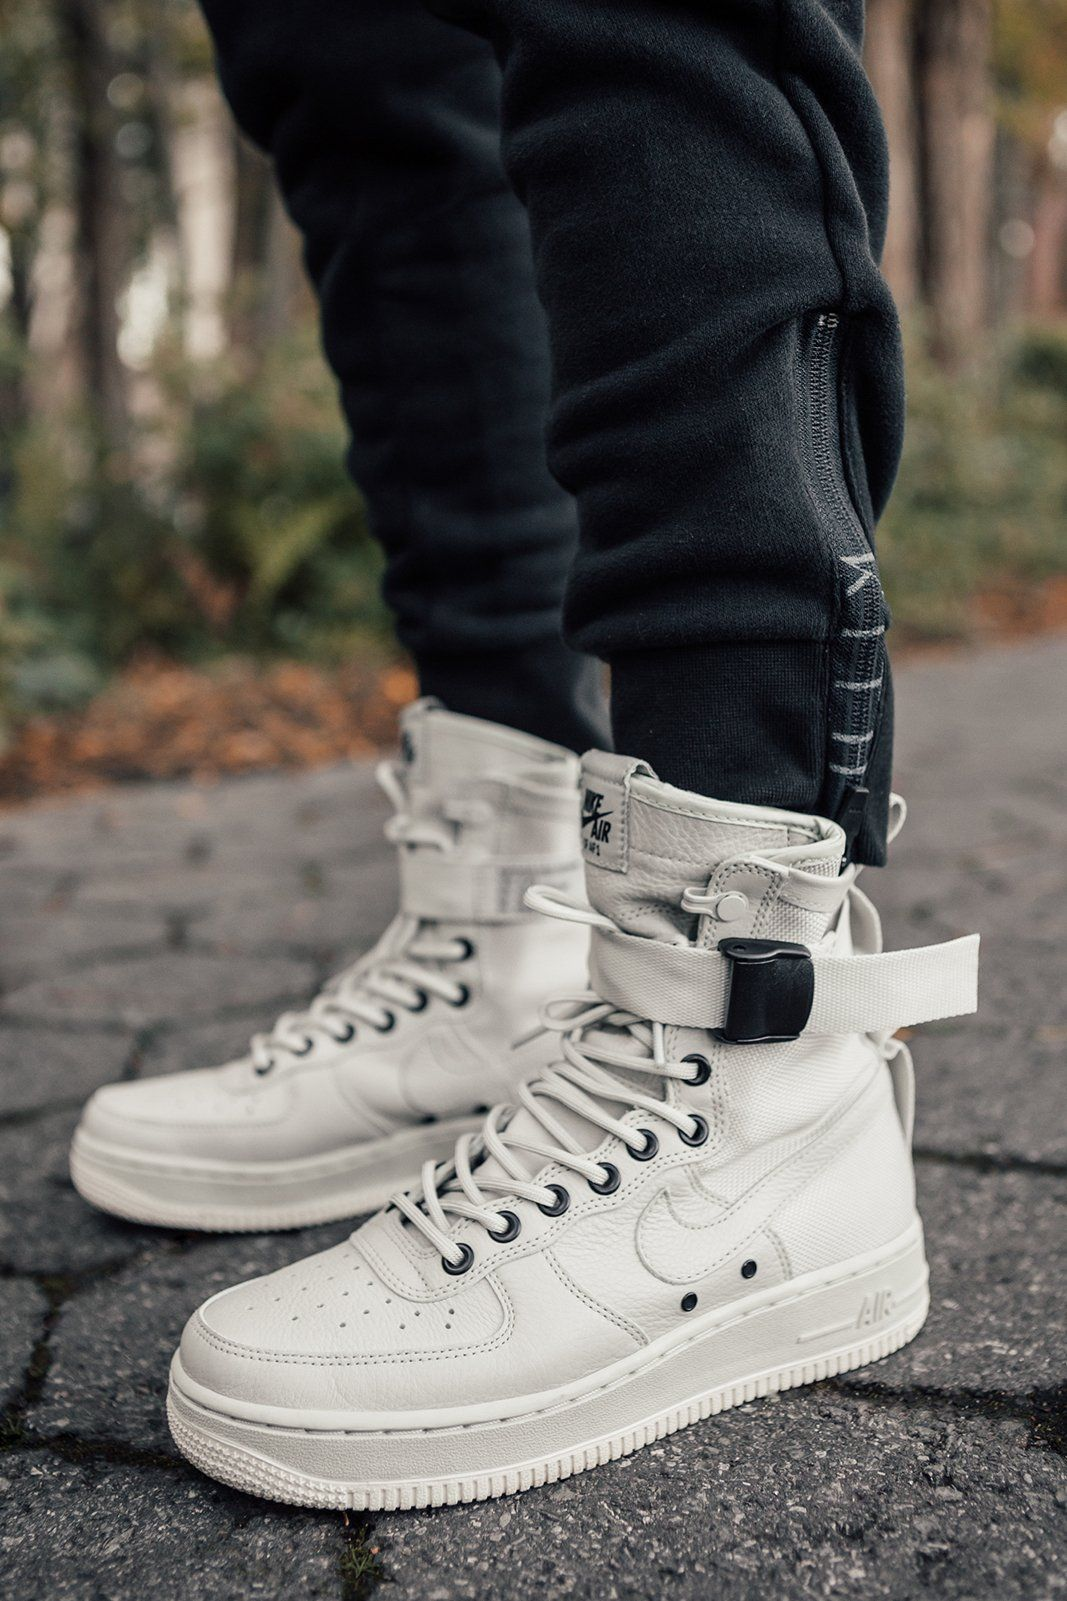 1862f776ce4 Kith partners with Nike to shoot an editorial to launch the all-new SF AF-1  collection. The Air Force 1 s classic design has been the foundation for a  ...